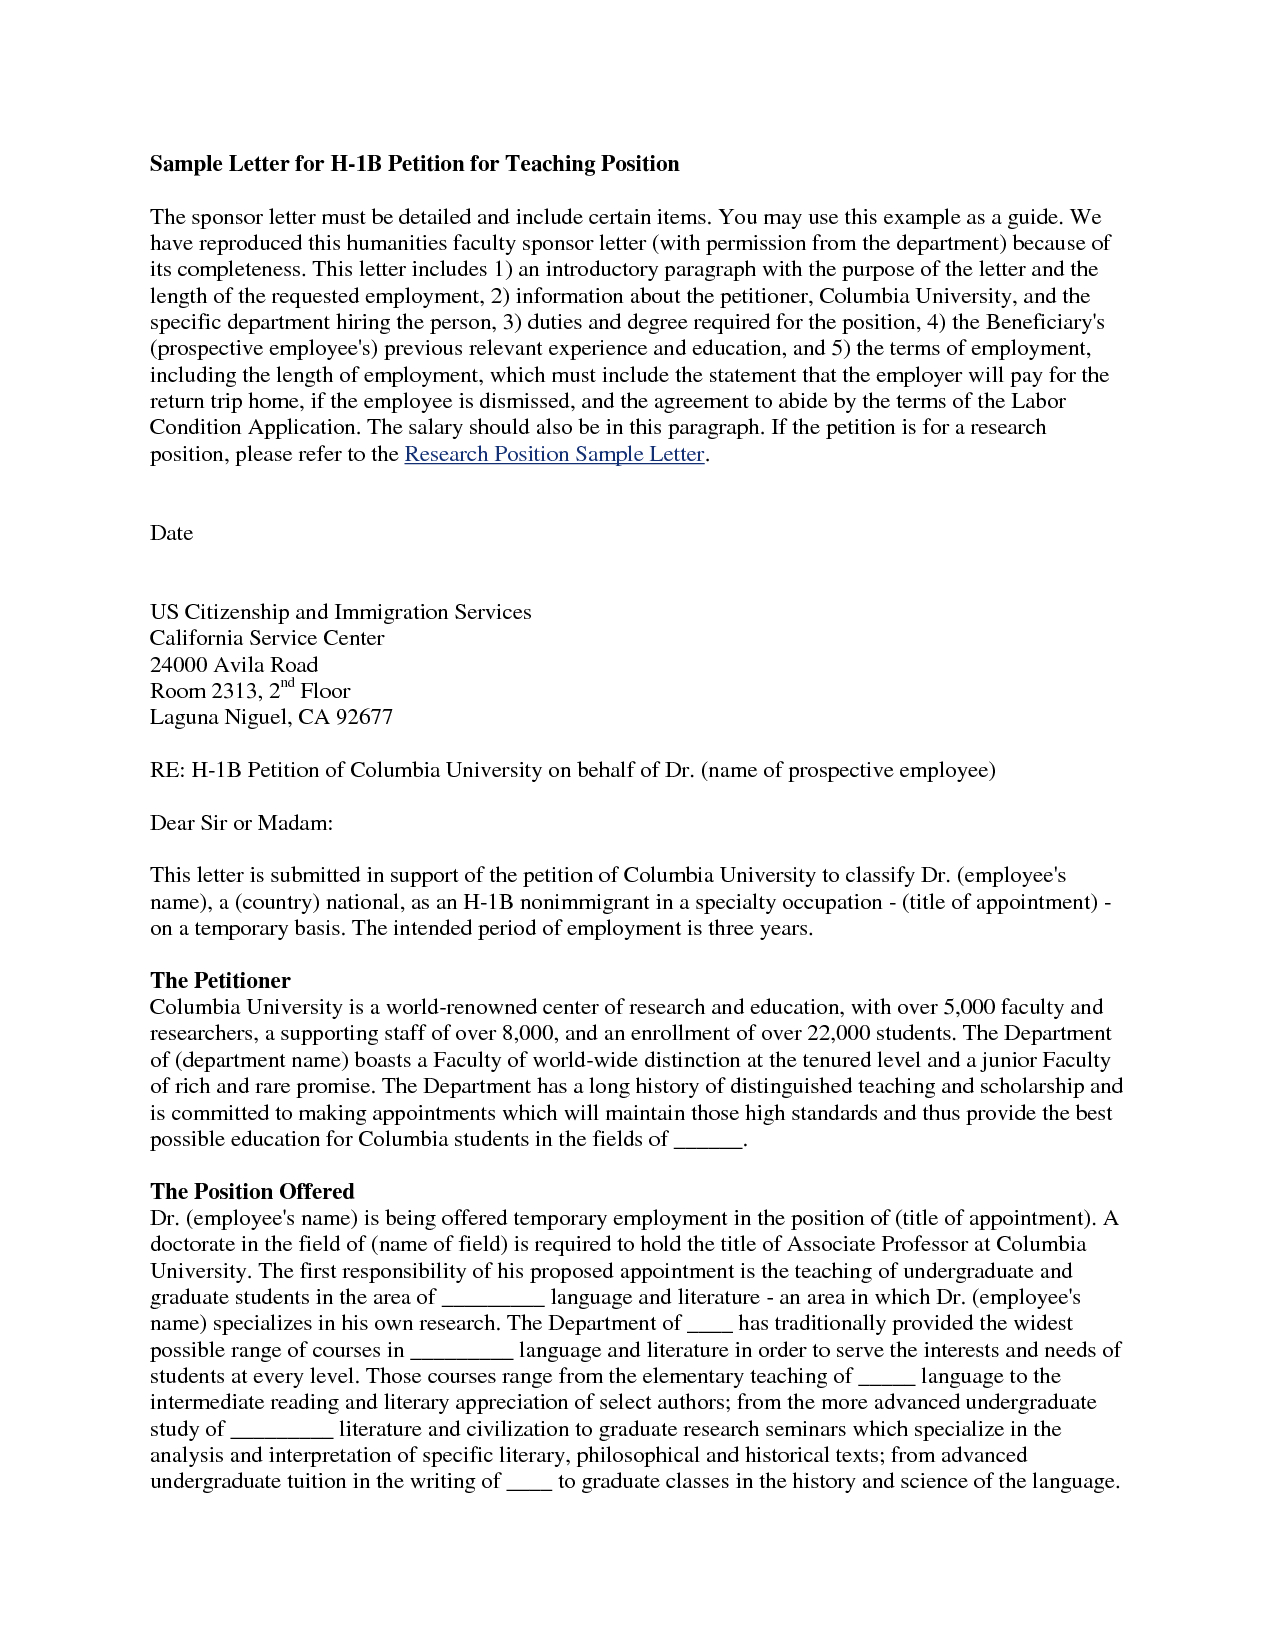 formal petition letter template how to write a letter petition image collections letter format